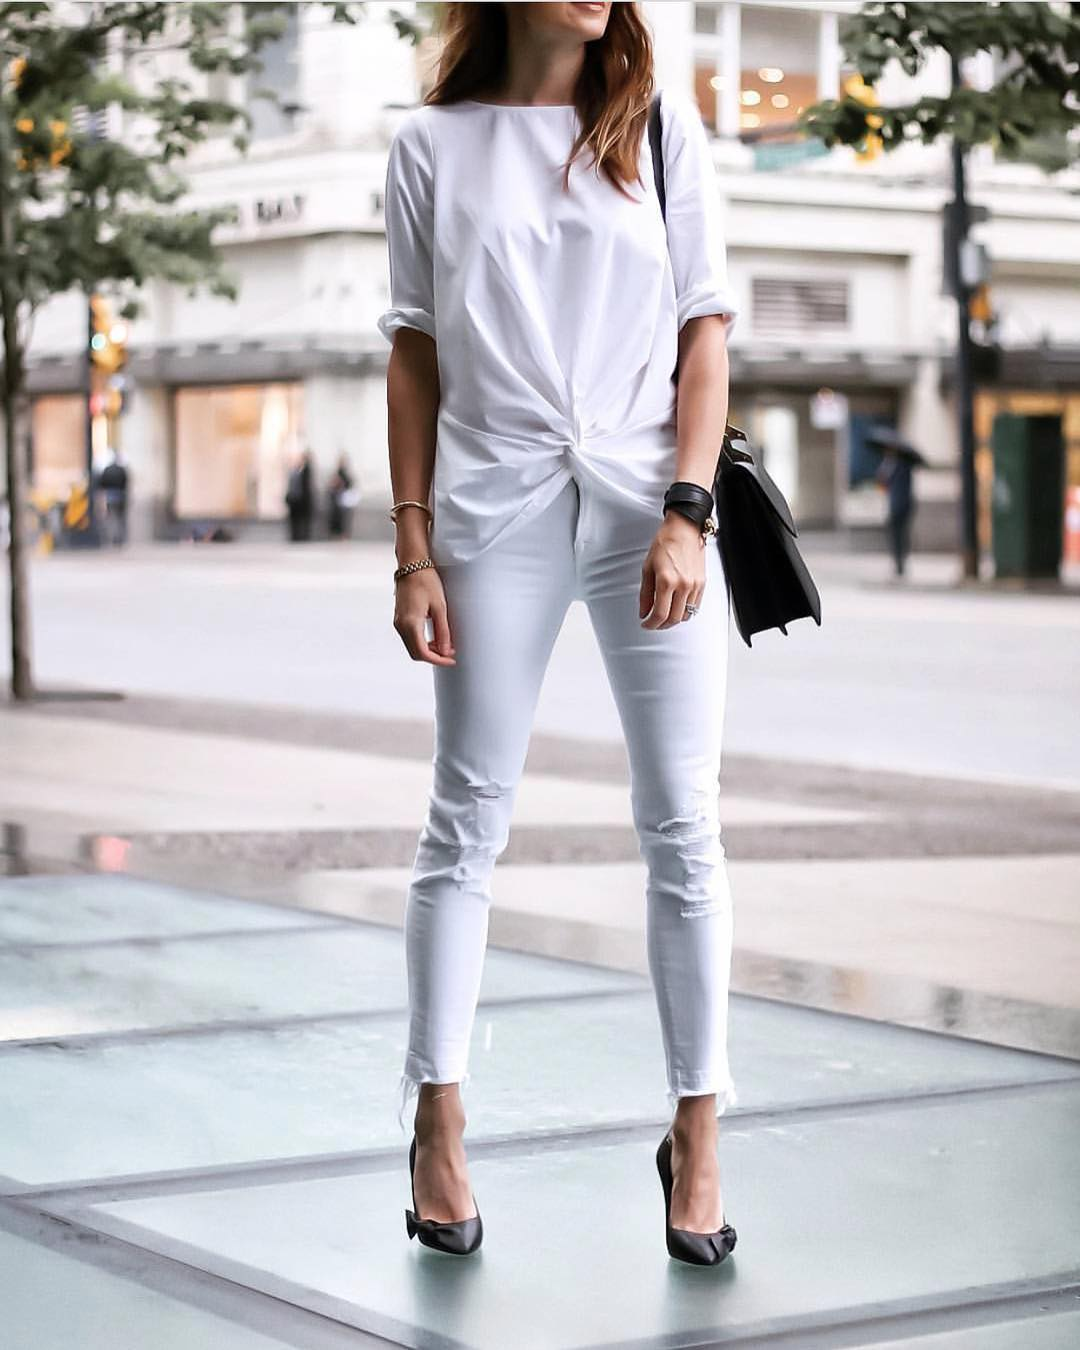 Oversized White T-Shirt And Frayed Skinny Jeans In White For Summer 2021